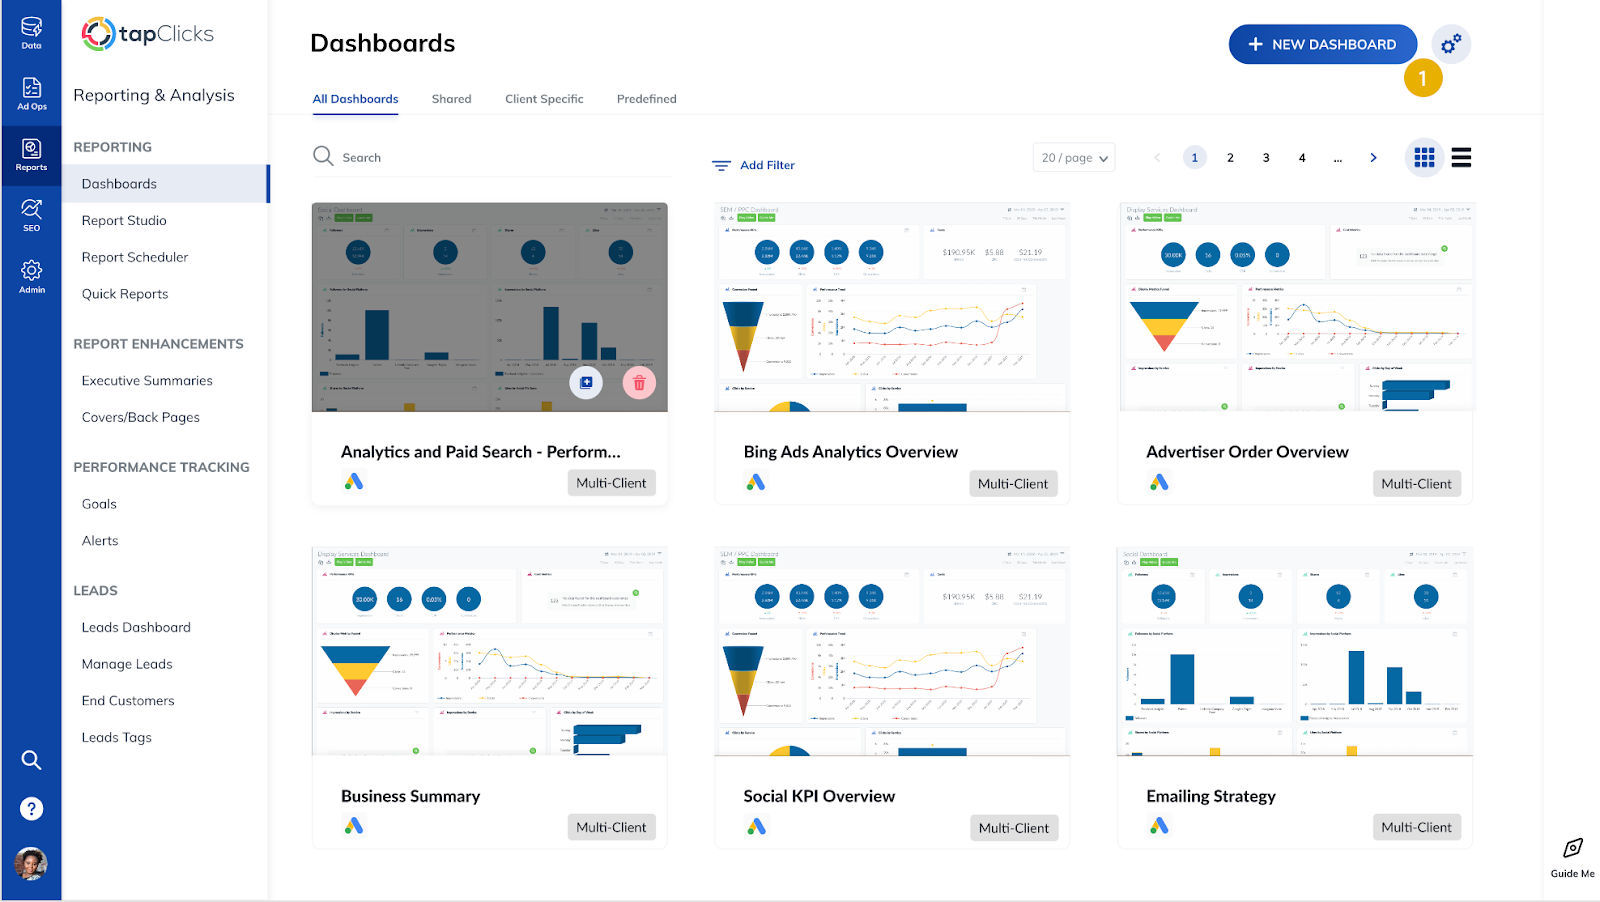 TapClicks for marketing reporting and dashboards